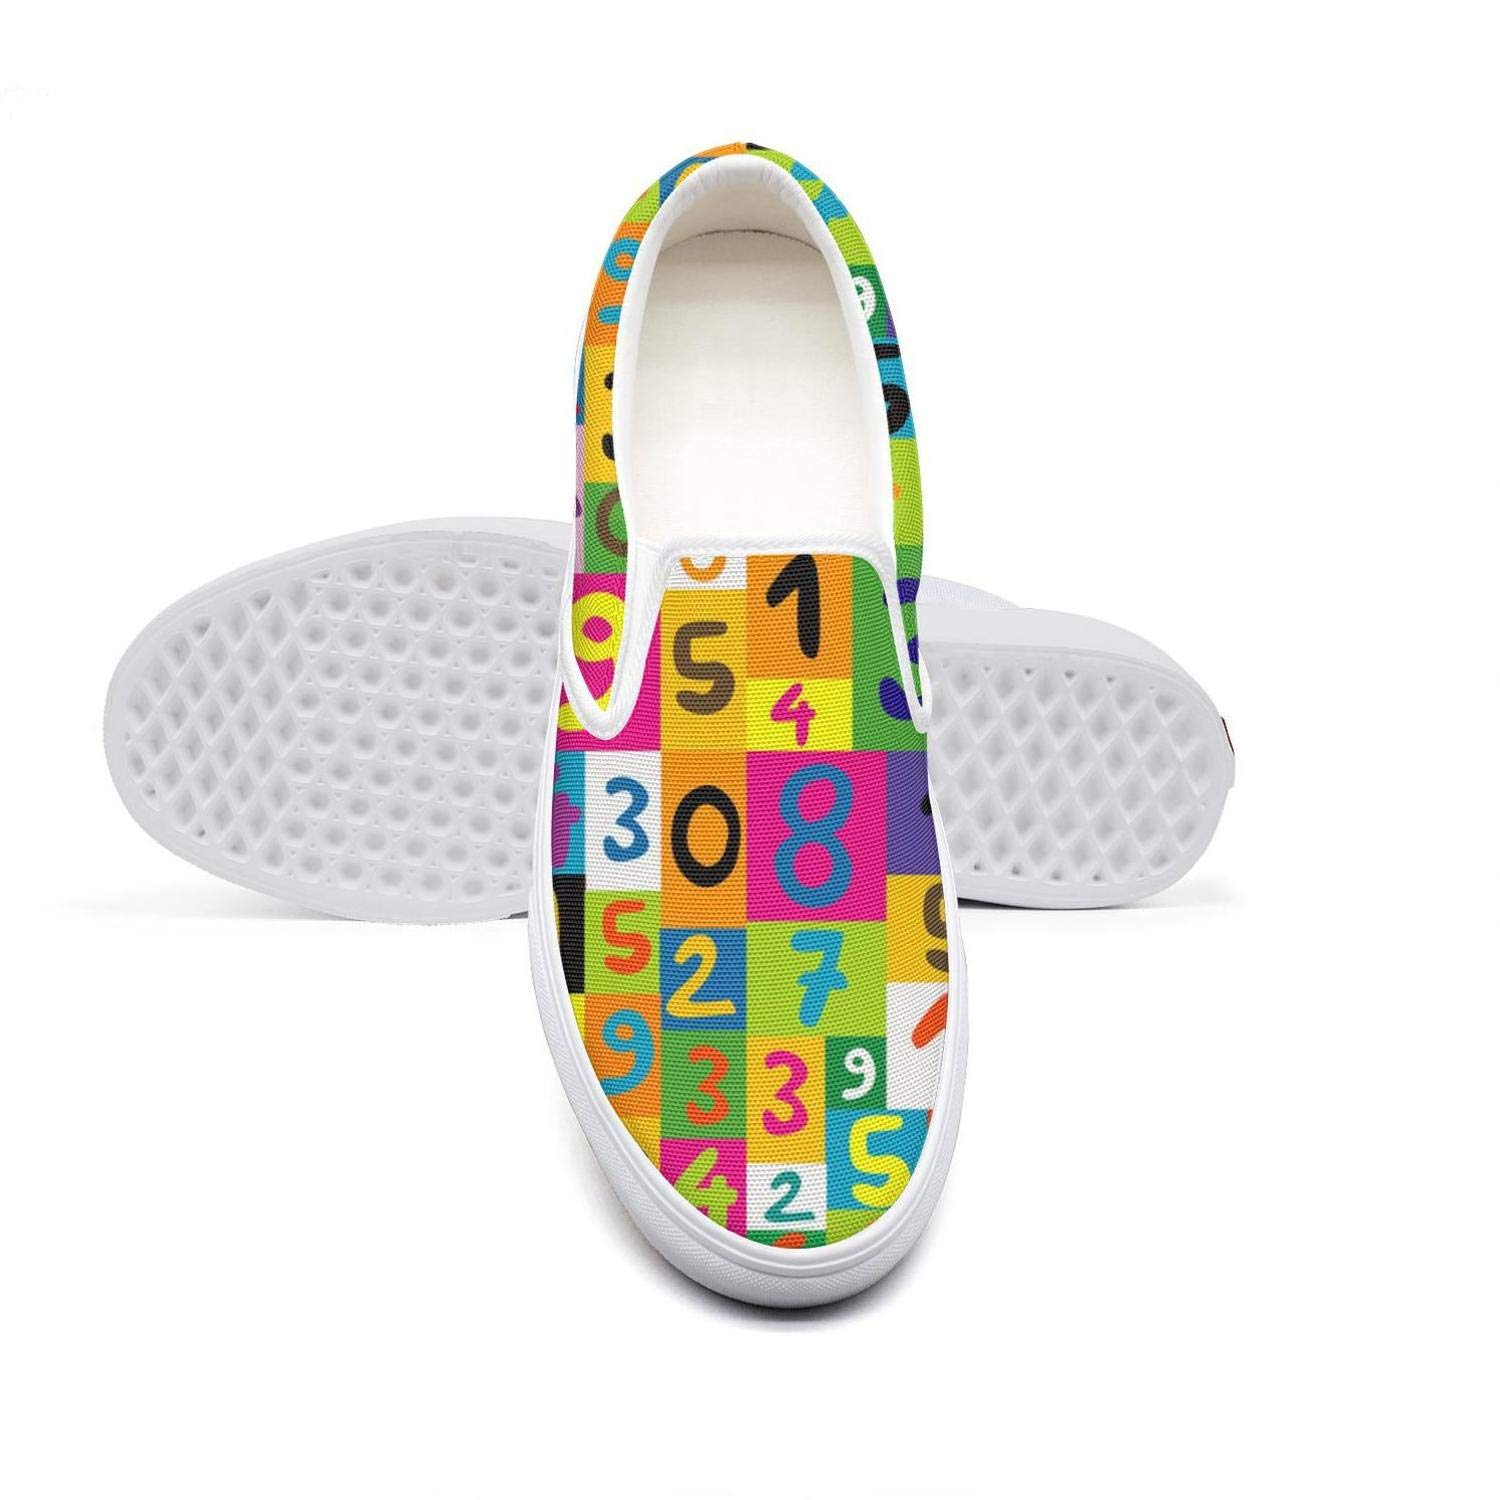 Colorful Math Numbers Seamless Youth Low Cut Stylish Footwear by eredfs